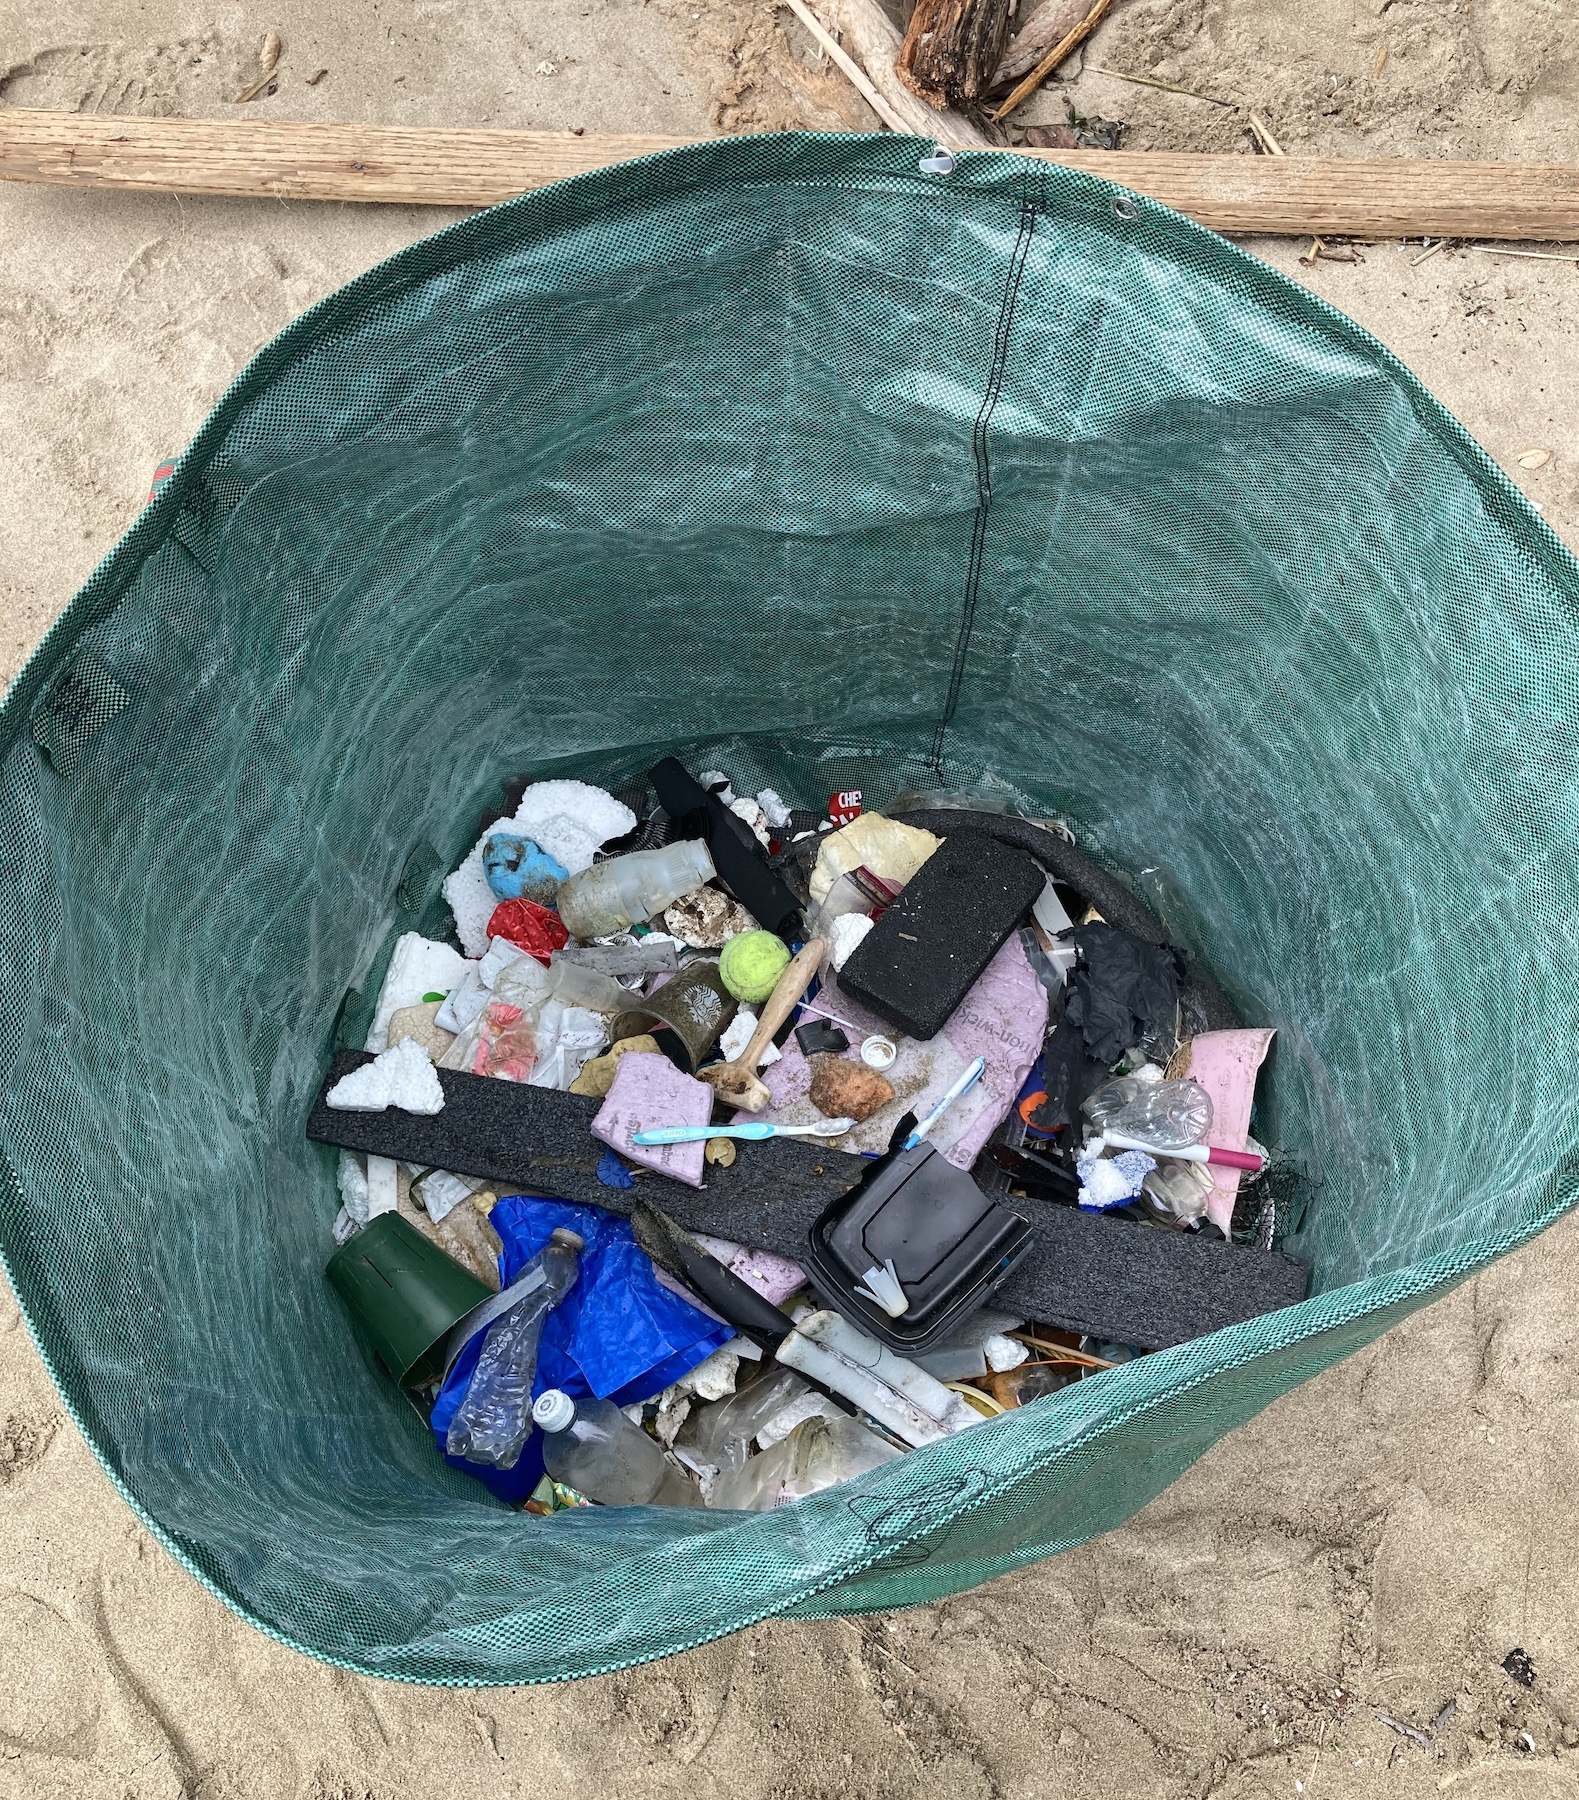 Collected trash